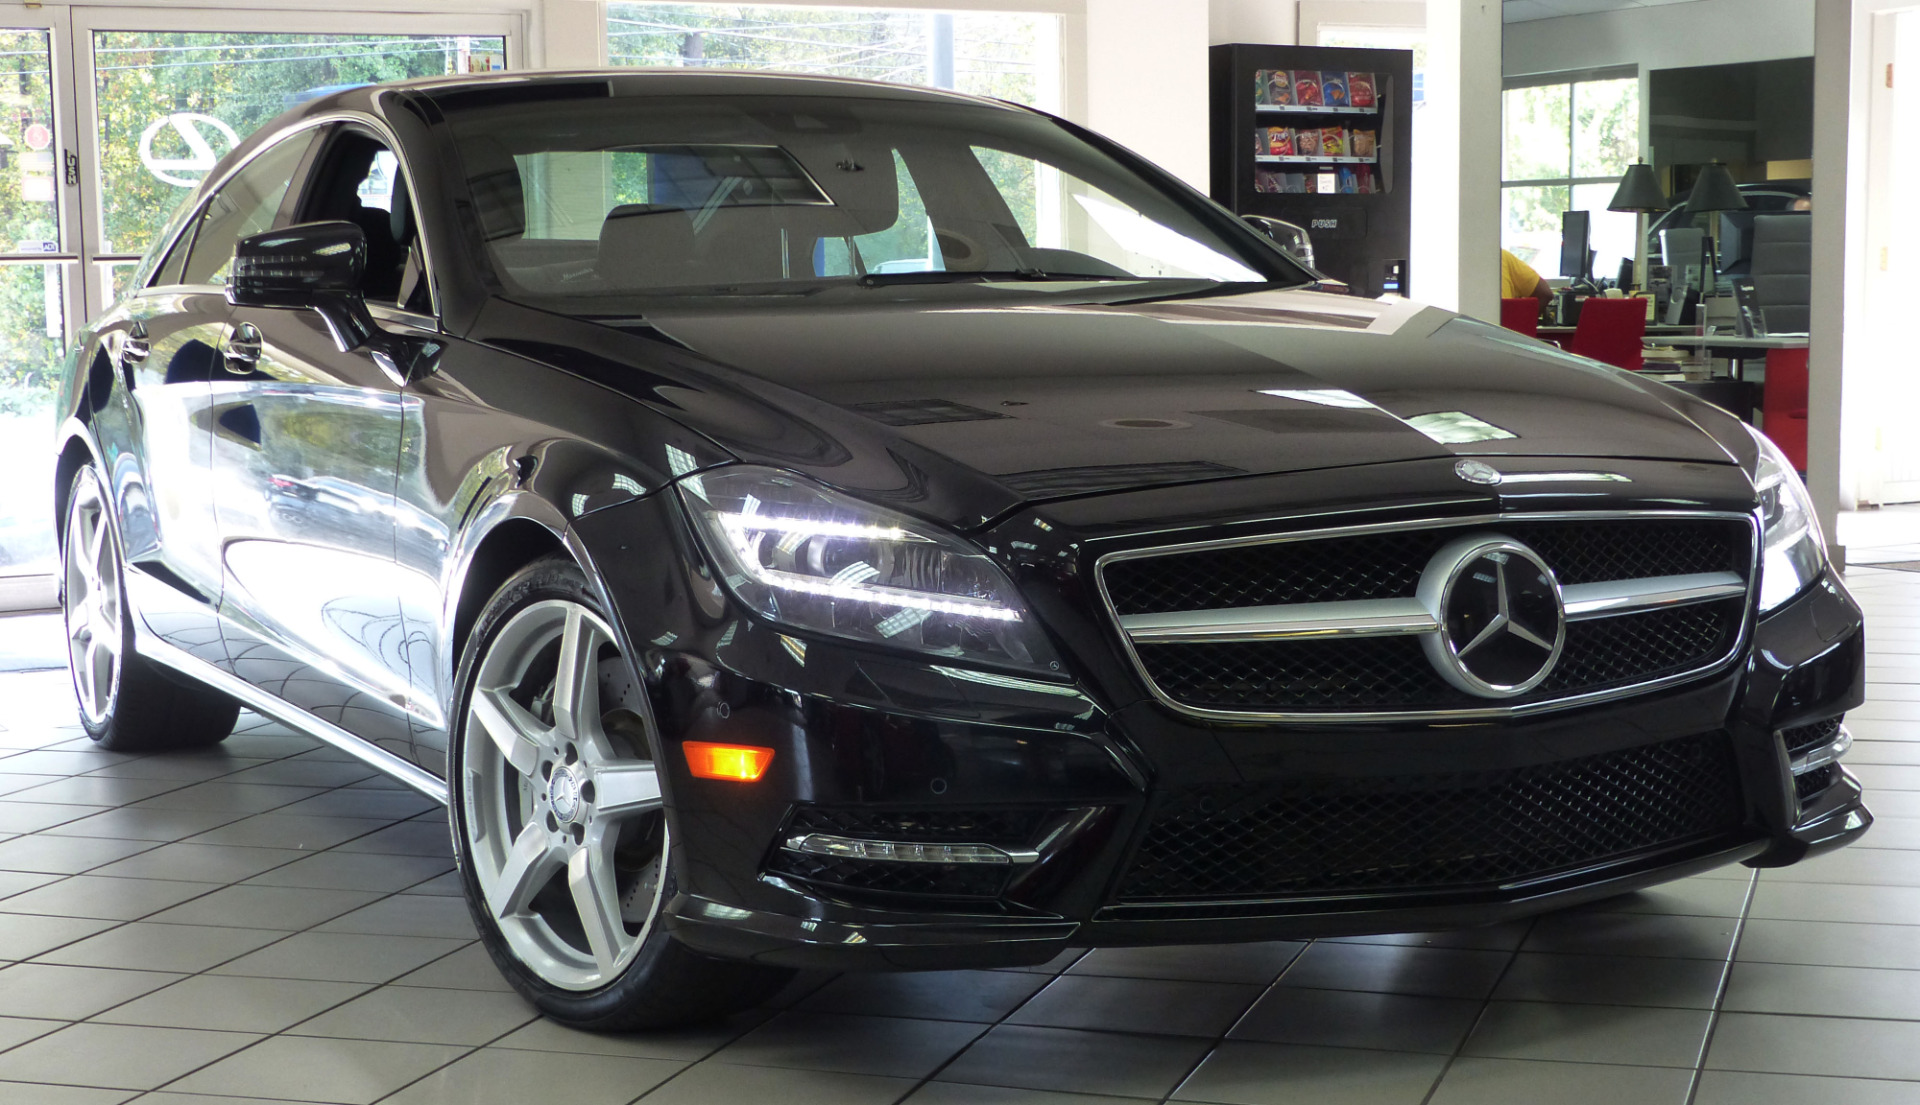 Used 2014 mercedes benz cls class cls550 marietta ga for Mercedes benz 550 cls